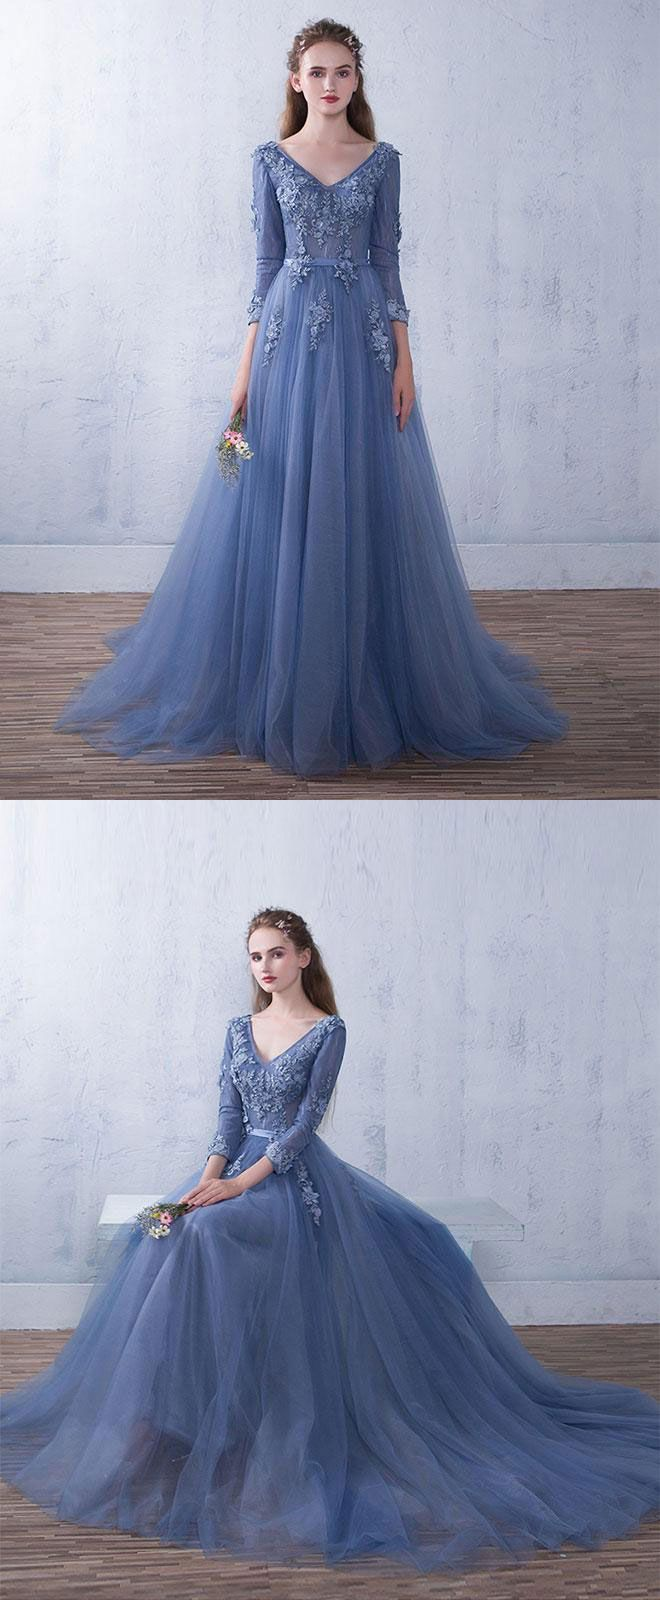 Beautiful Sky Blue Long Prom Dress,Party Dress With Long Sleeves P2236